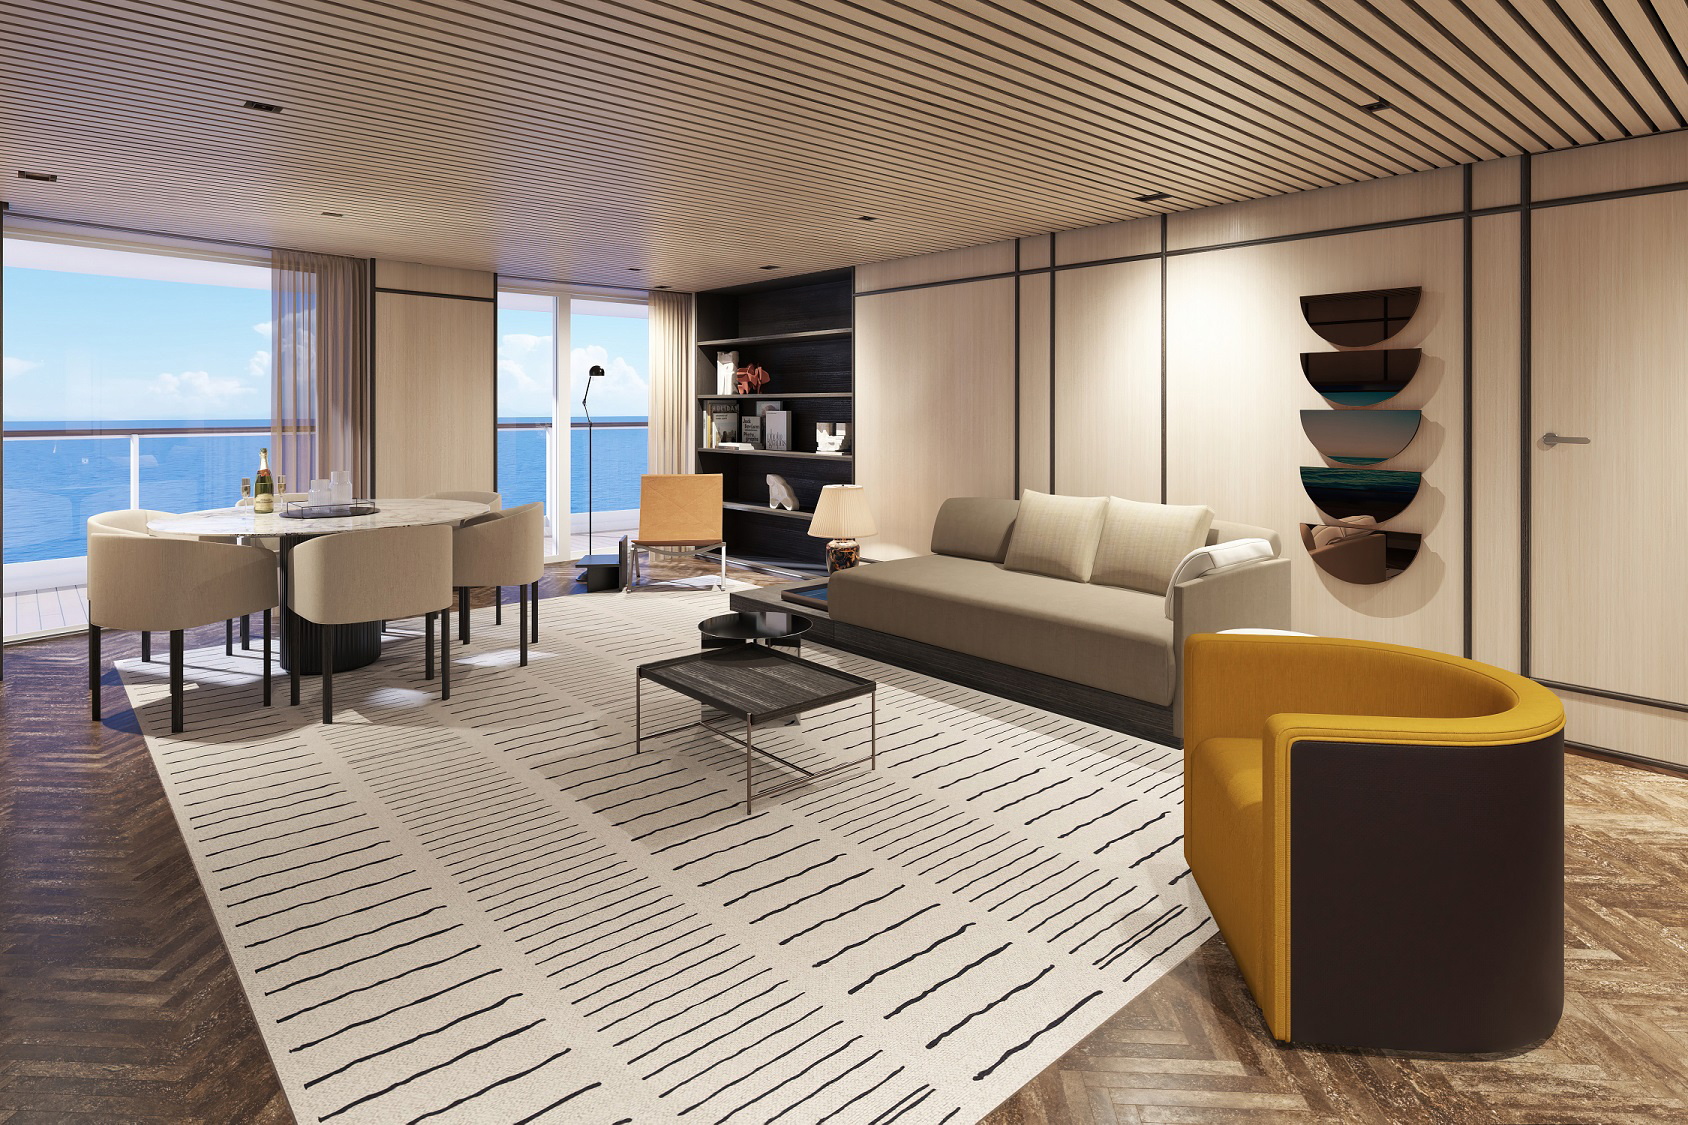 Norwegian Prima will offer the largest variety of suite categories available at sea with 13 suite categories as well as the largest three-bedroom suites of any new cruise ship.